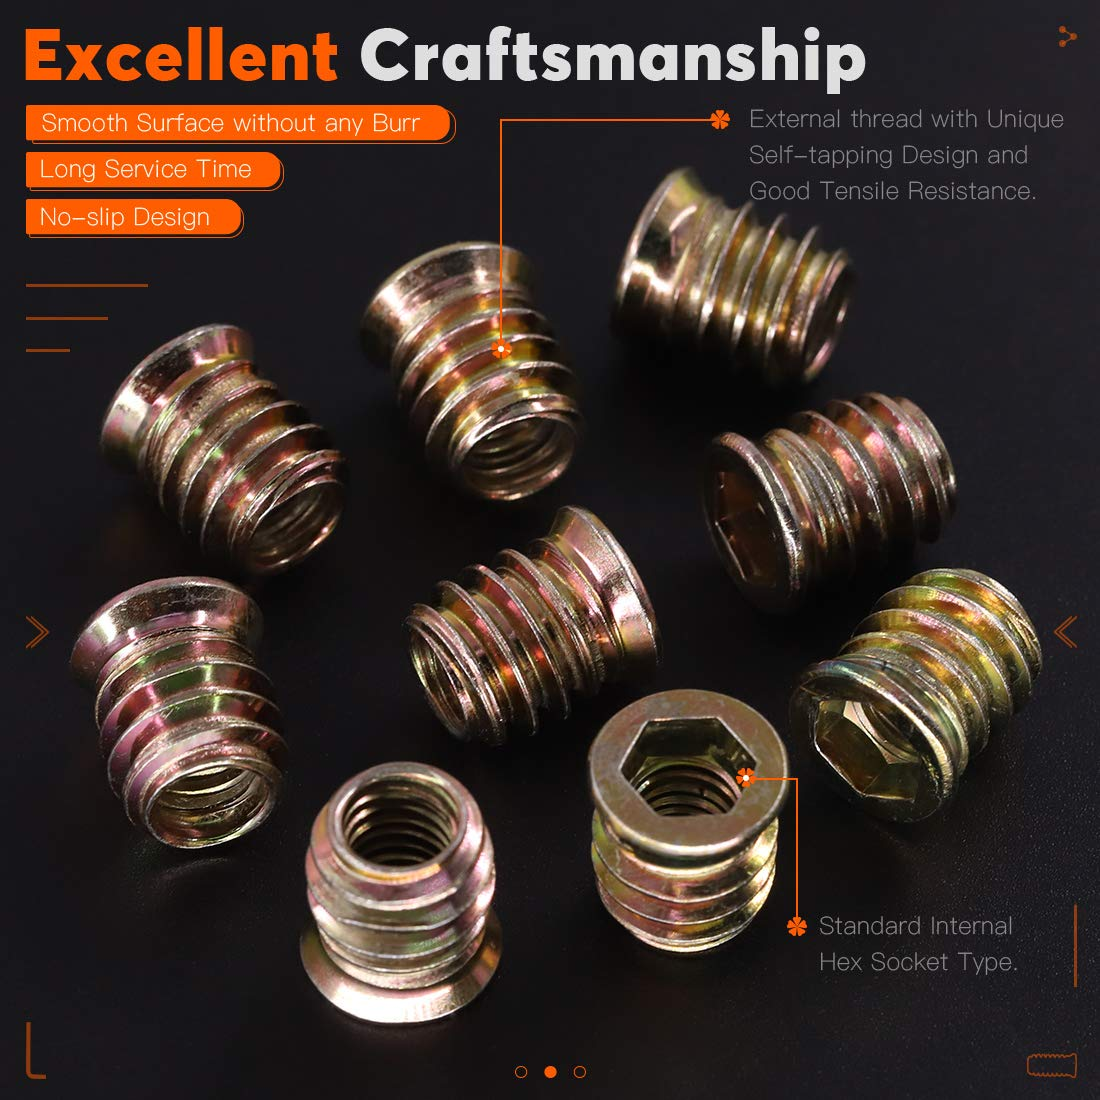 Rustark 50 pcs 5//16-18/× 12mm Screw-in Nut Hex Socket Drive Set Carbon Steel Zinc Plated Color Bolt Fastener Connector Threaded Insert Nuts for Wood Furniture